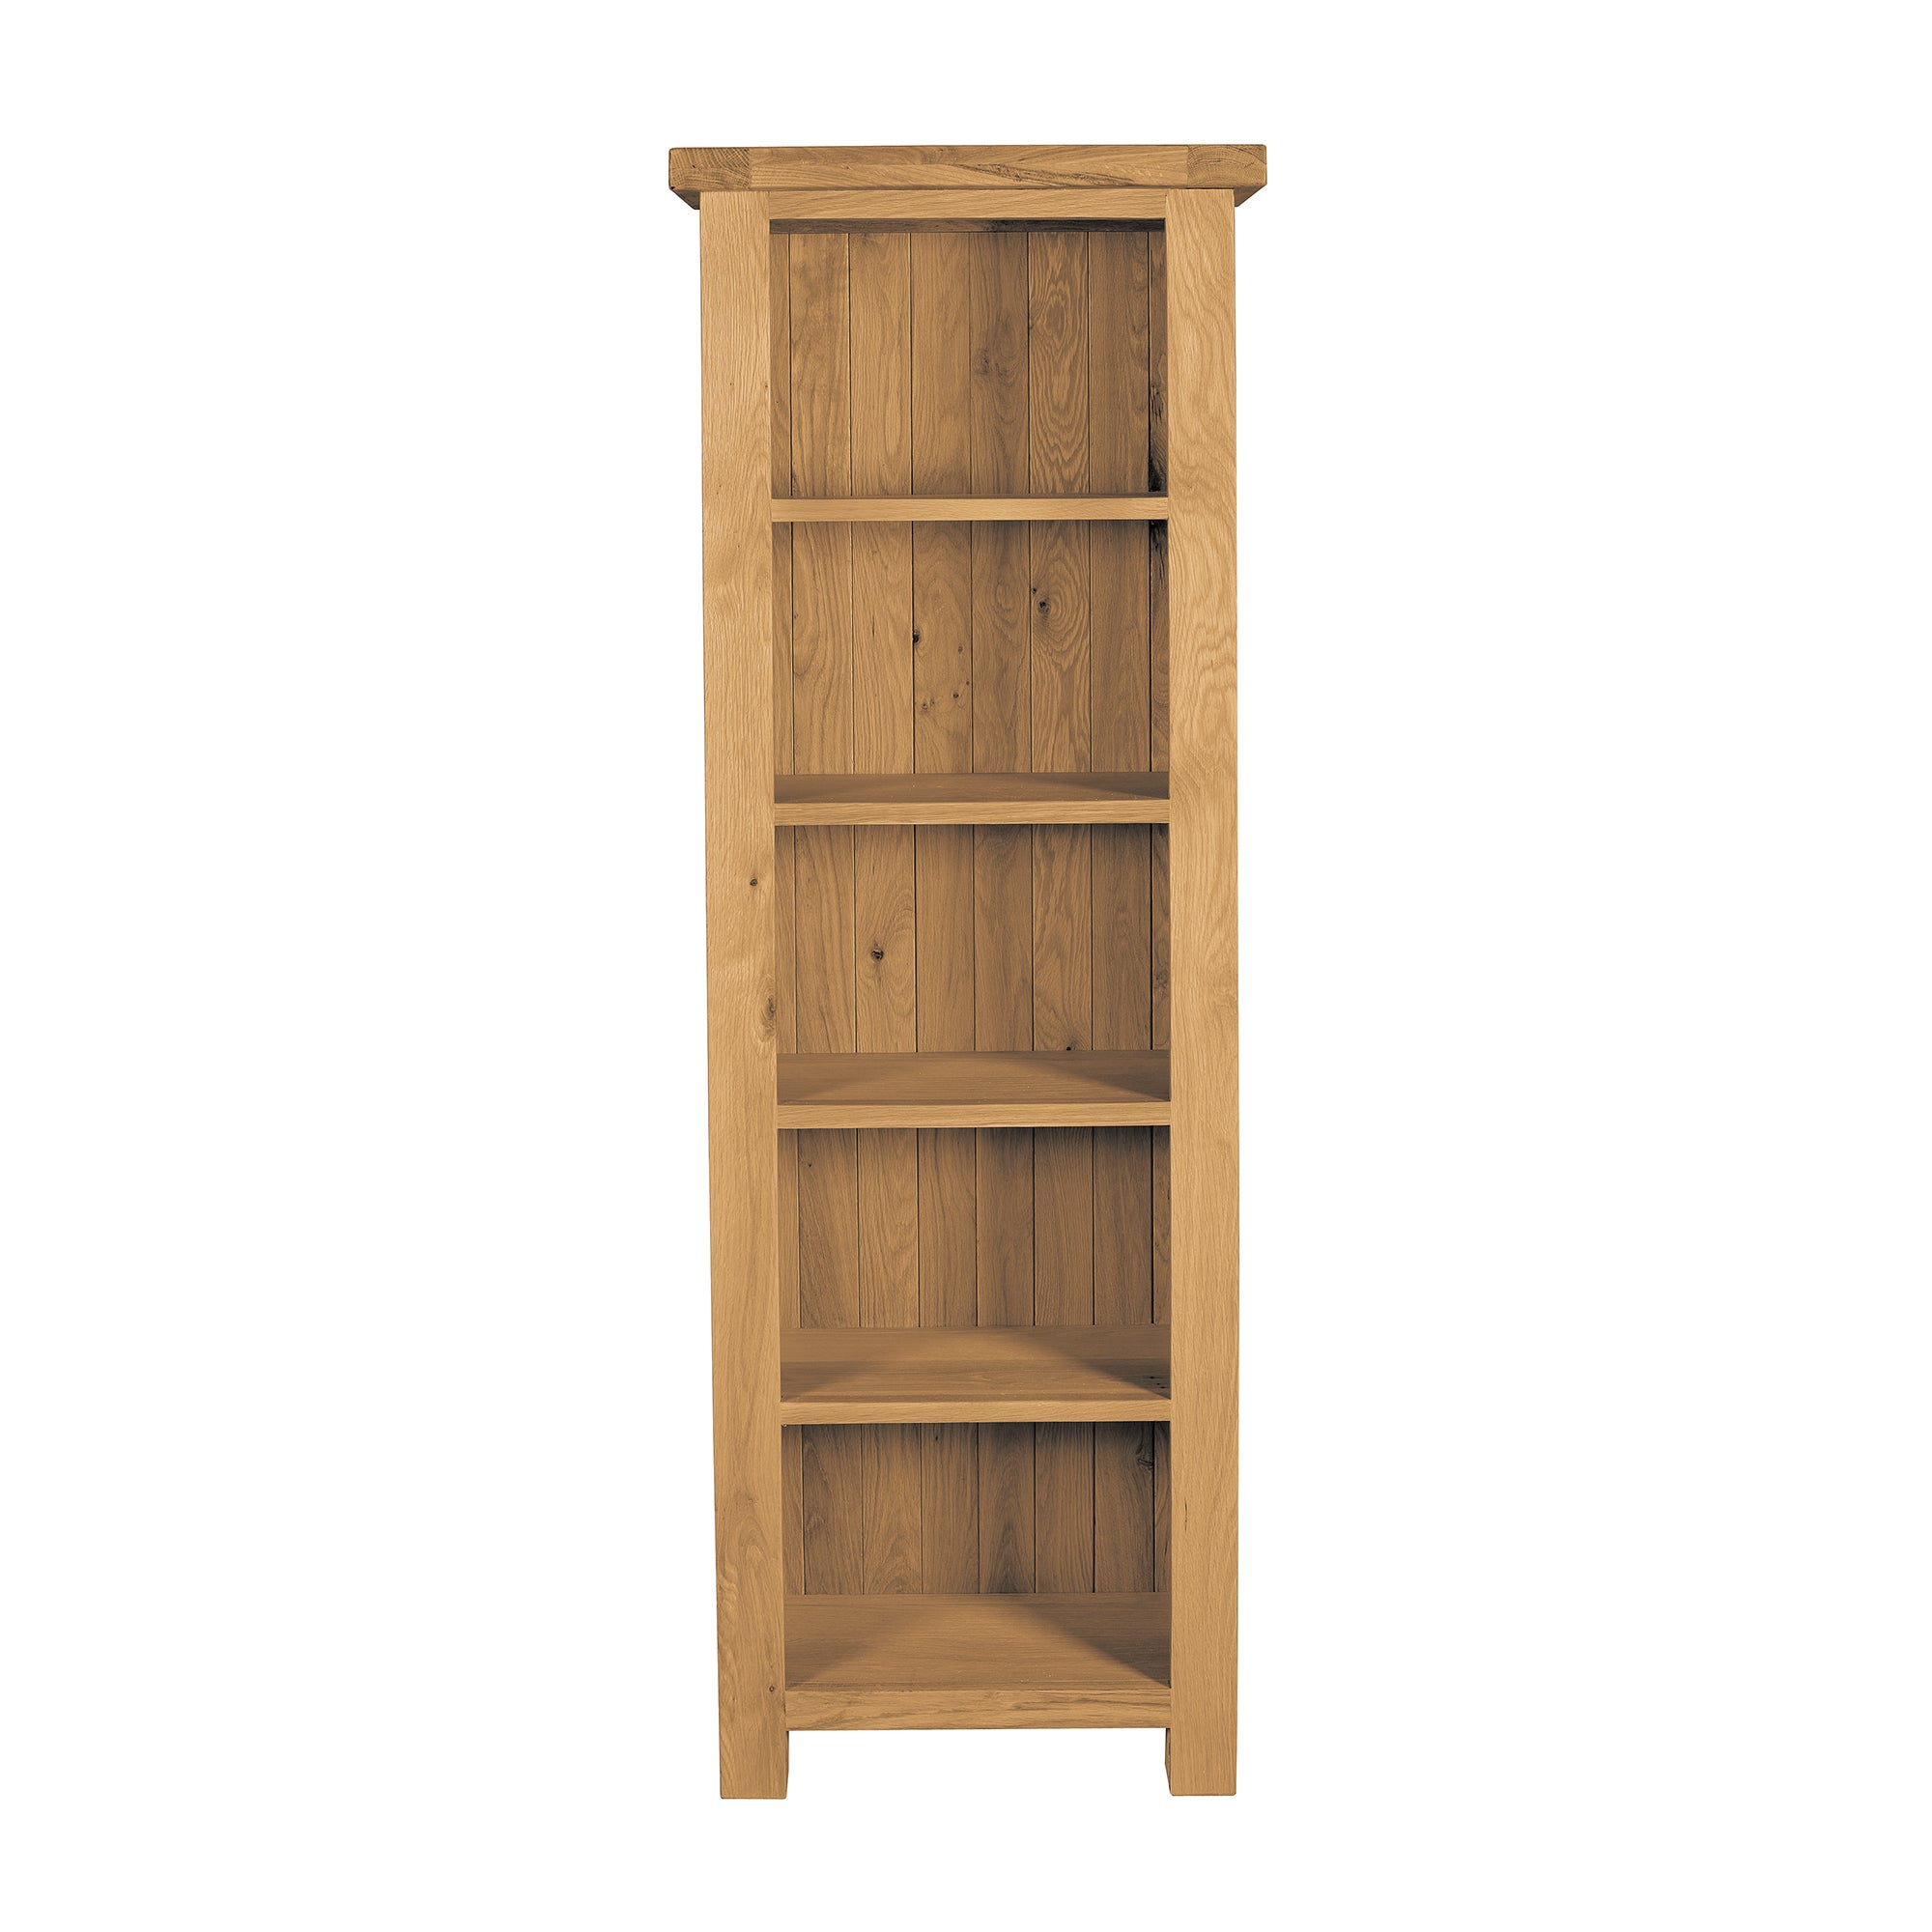 Harrogate Oak Slim Bookcase